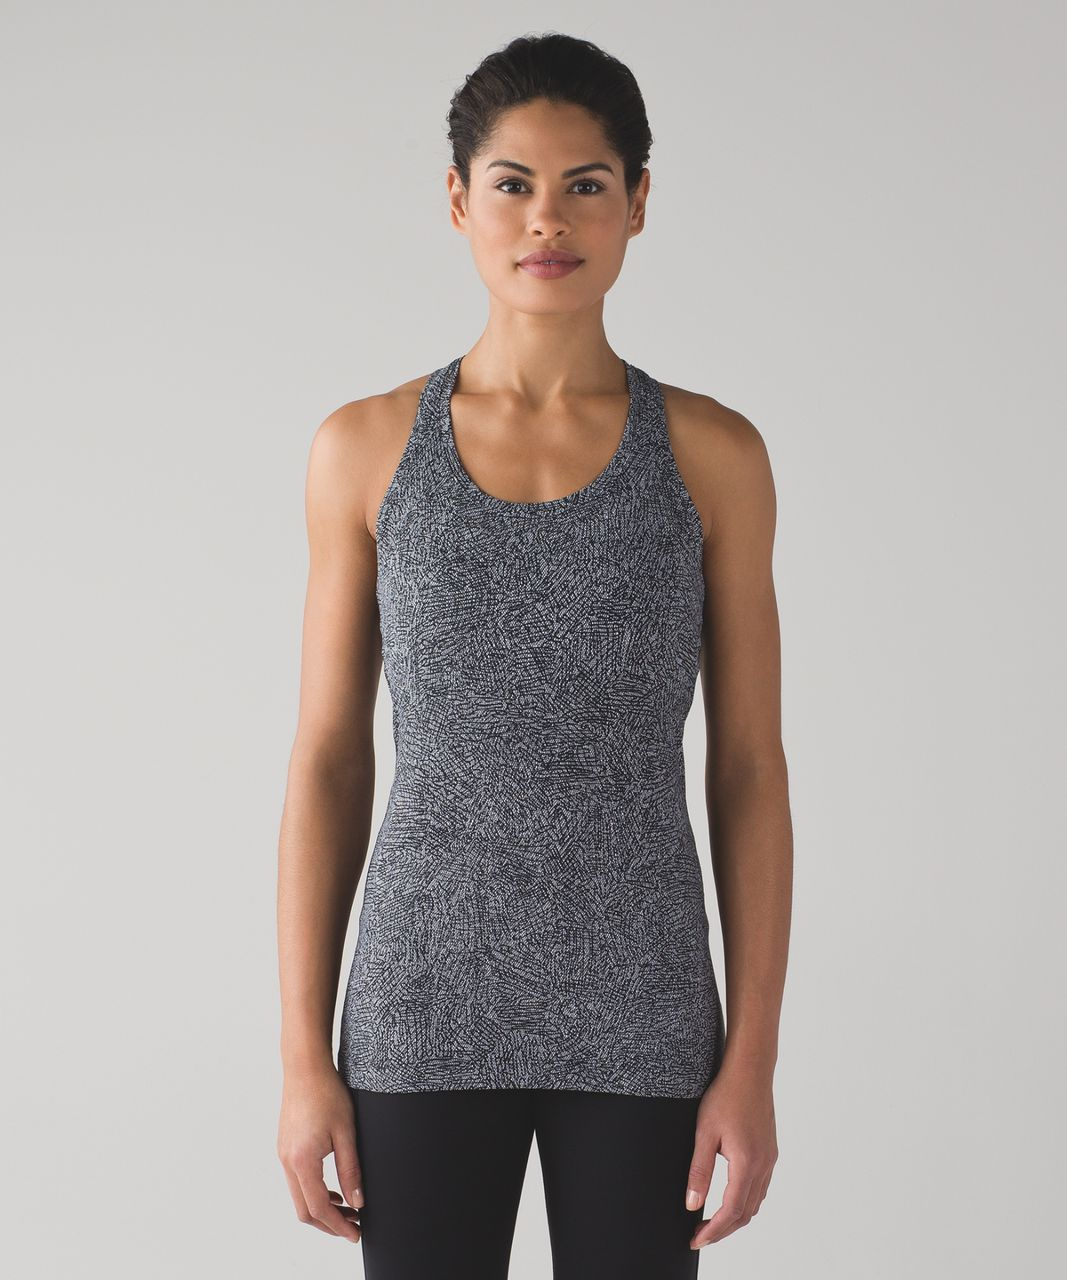 Lululemon Cool Racerback II - Line Up White Black